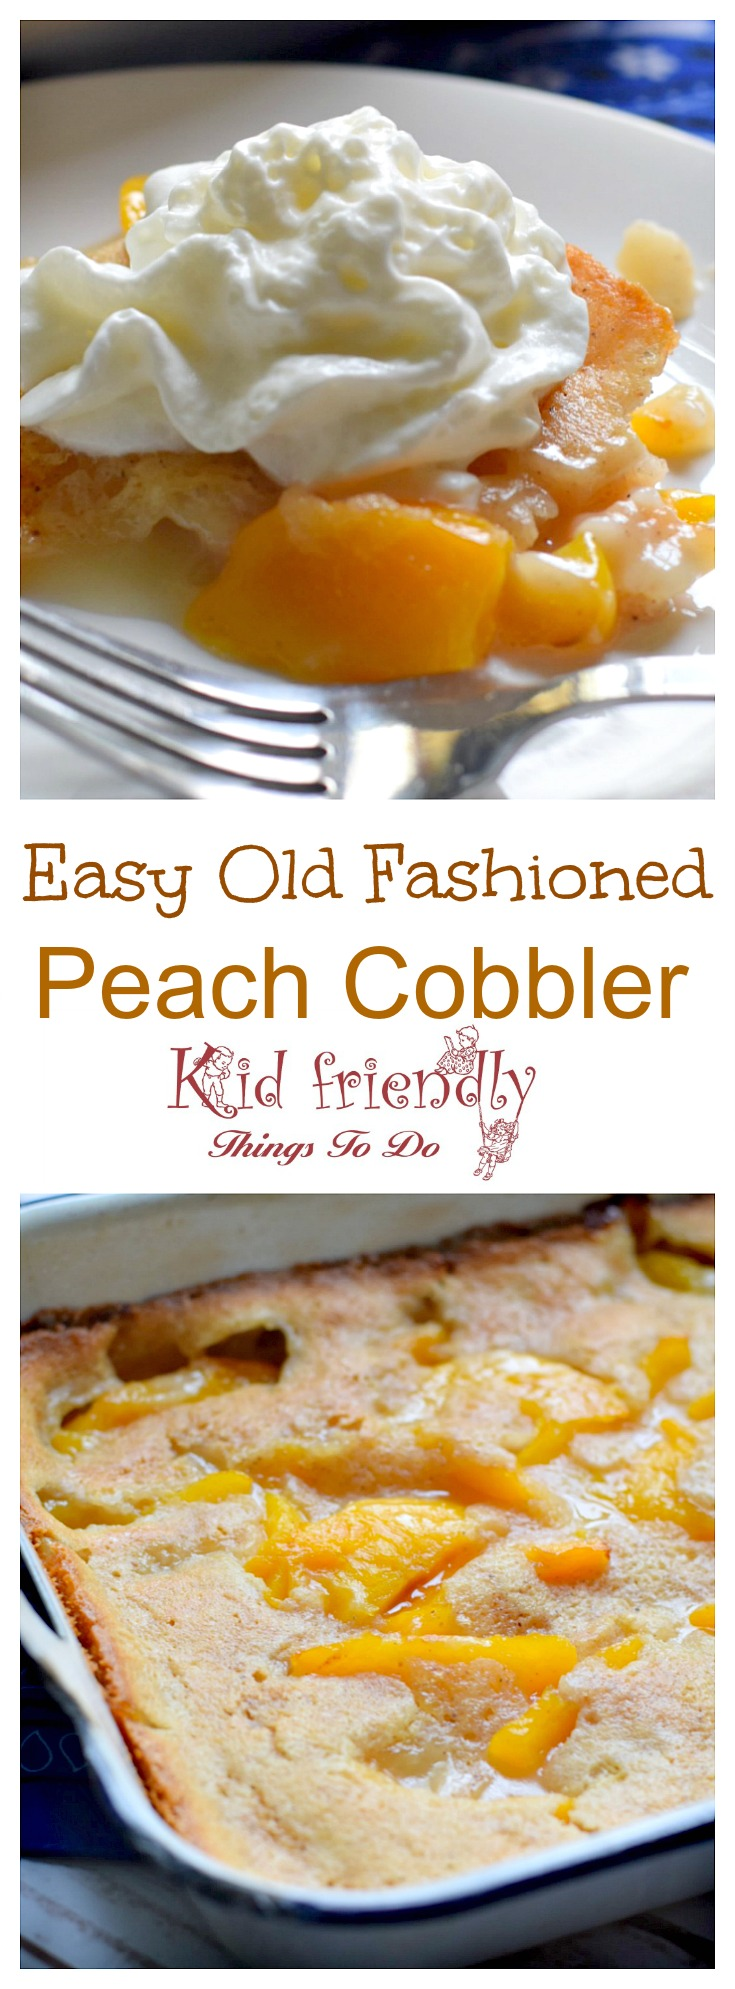 Peach Cobbler Recipe with Whipped Cream Topping